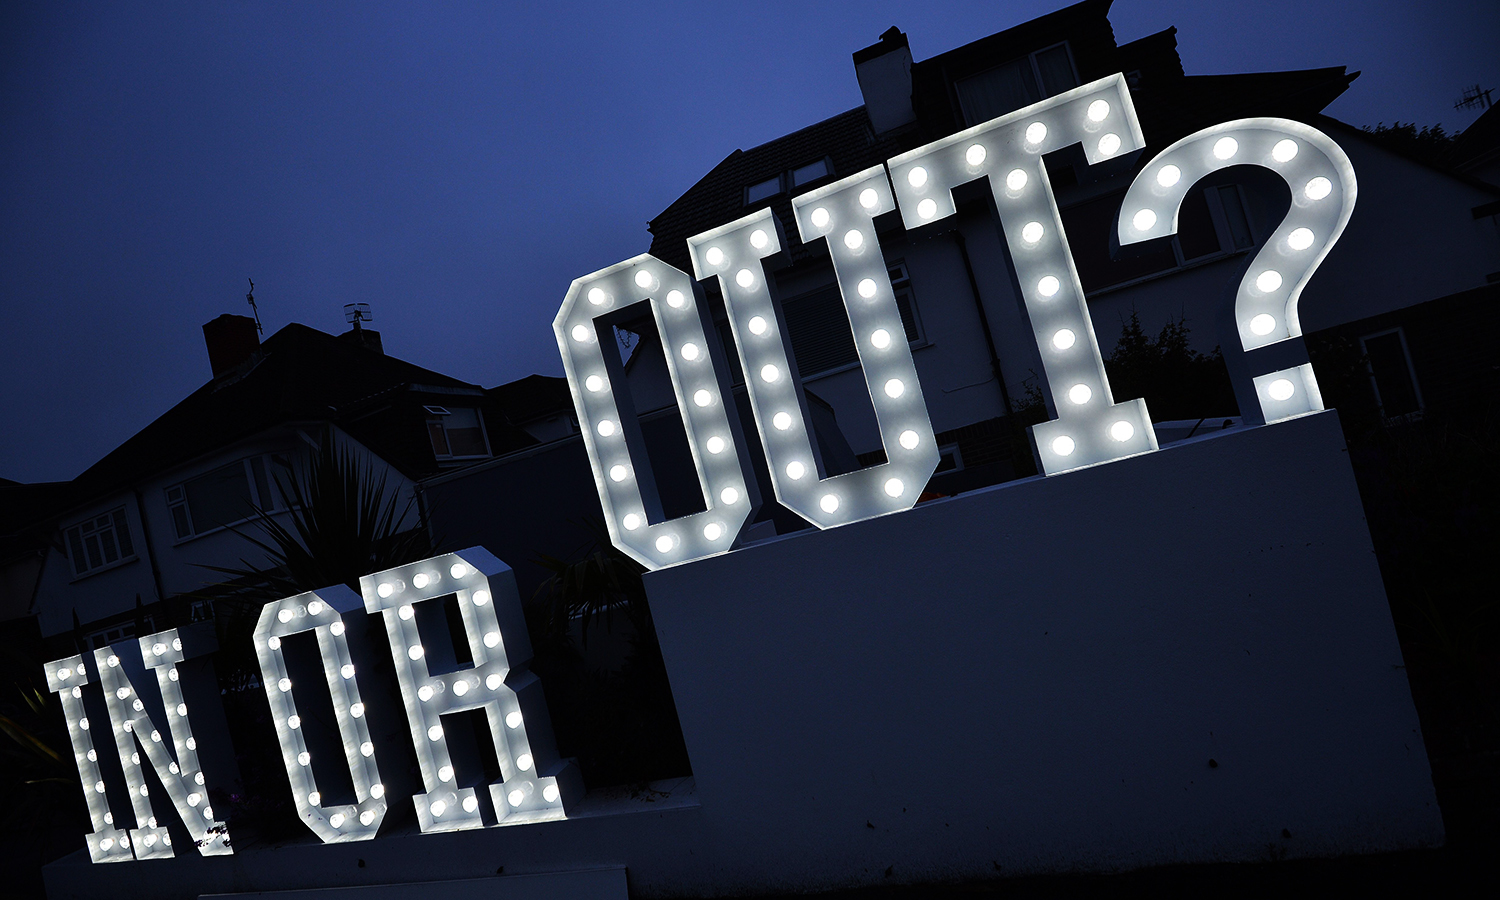 """An illuminated """"In or Out"""" sign is pictured outside a house in Hangleton near Brighton in southern England, on June 23, 2016, as Britain holds a referendum on whether to stay or leave the European Union (EU). Millions of Britons began voting Thursday in a bitterly-fought, knife-edge referendum that could tear up the island nation's EU membership and spark the greatest emergency of the bloc's 60-year history. / AFP PHOTO / GLYN KIRK"""